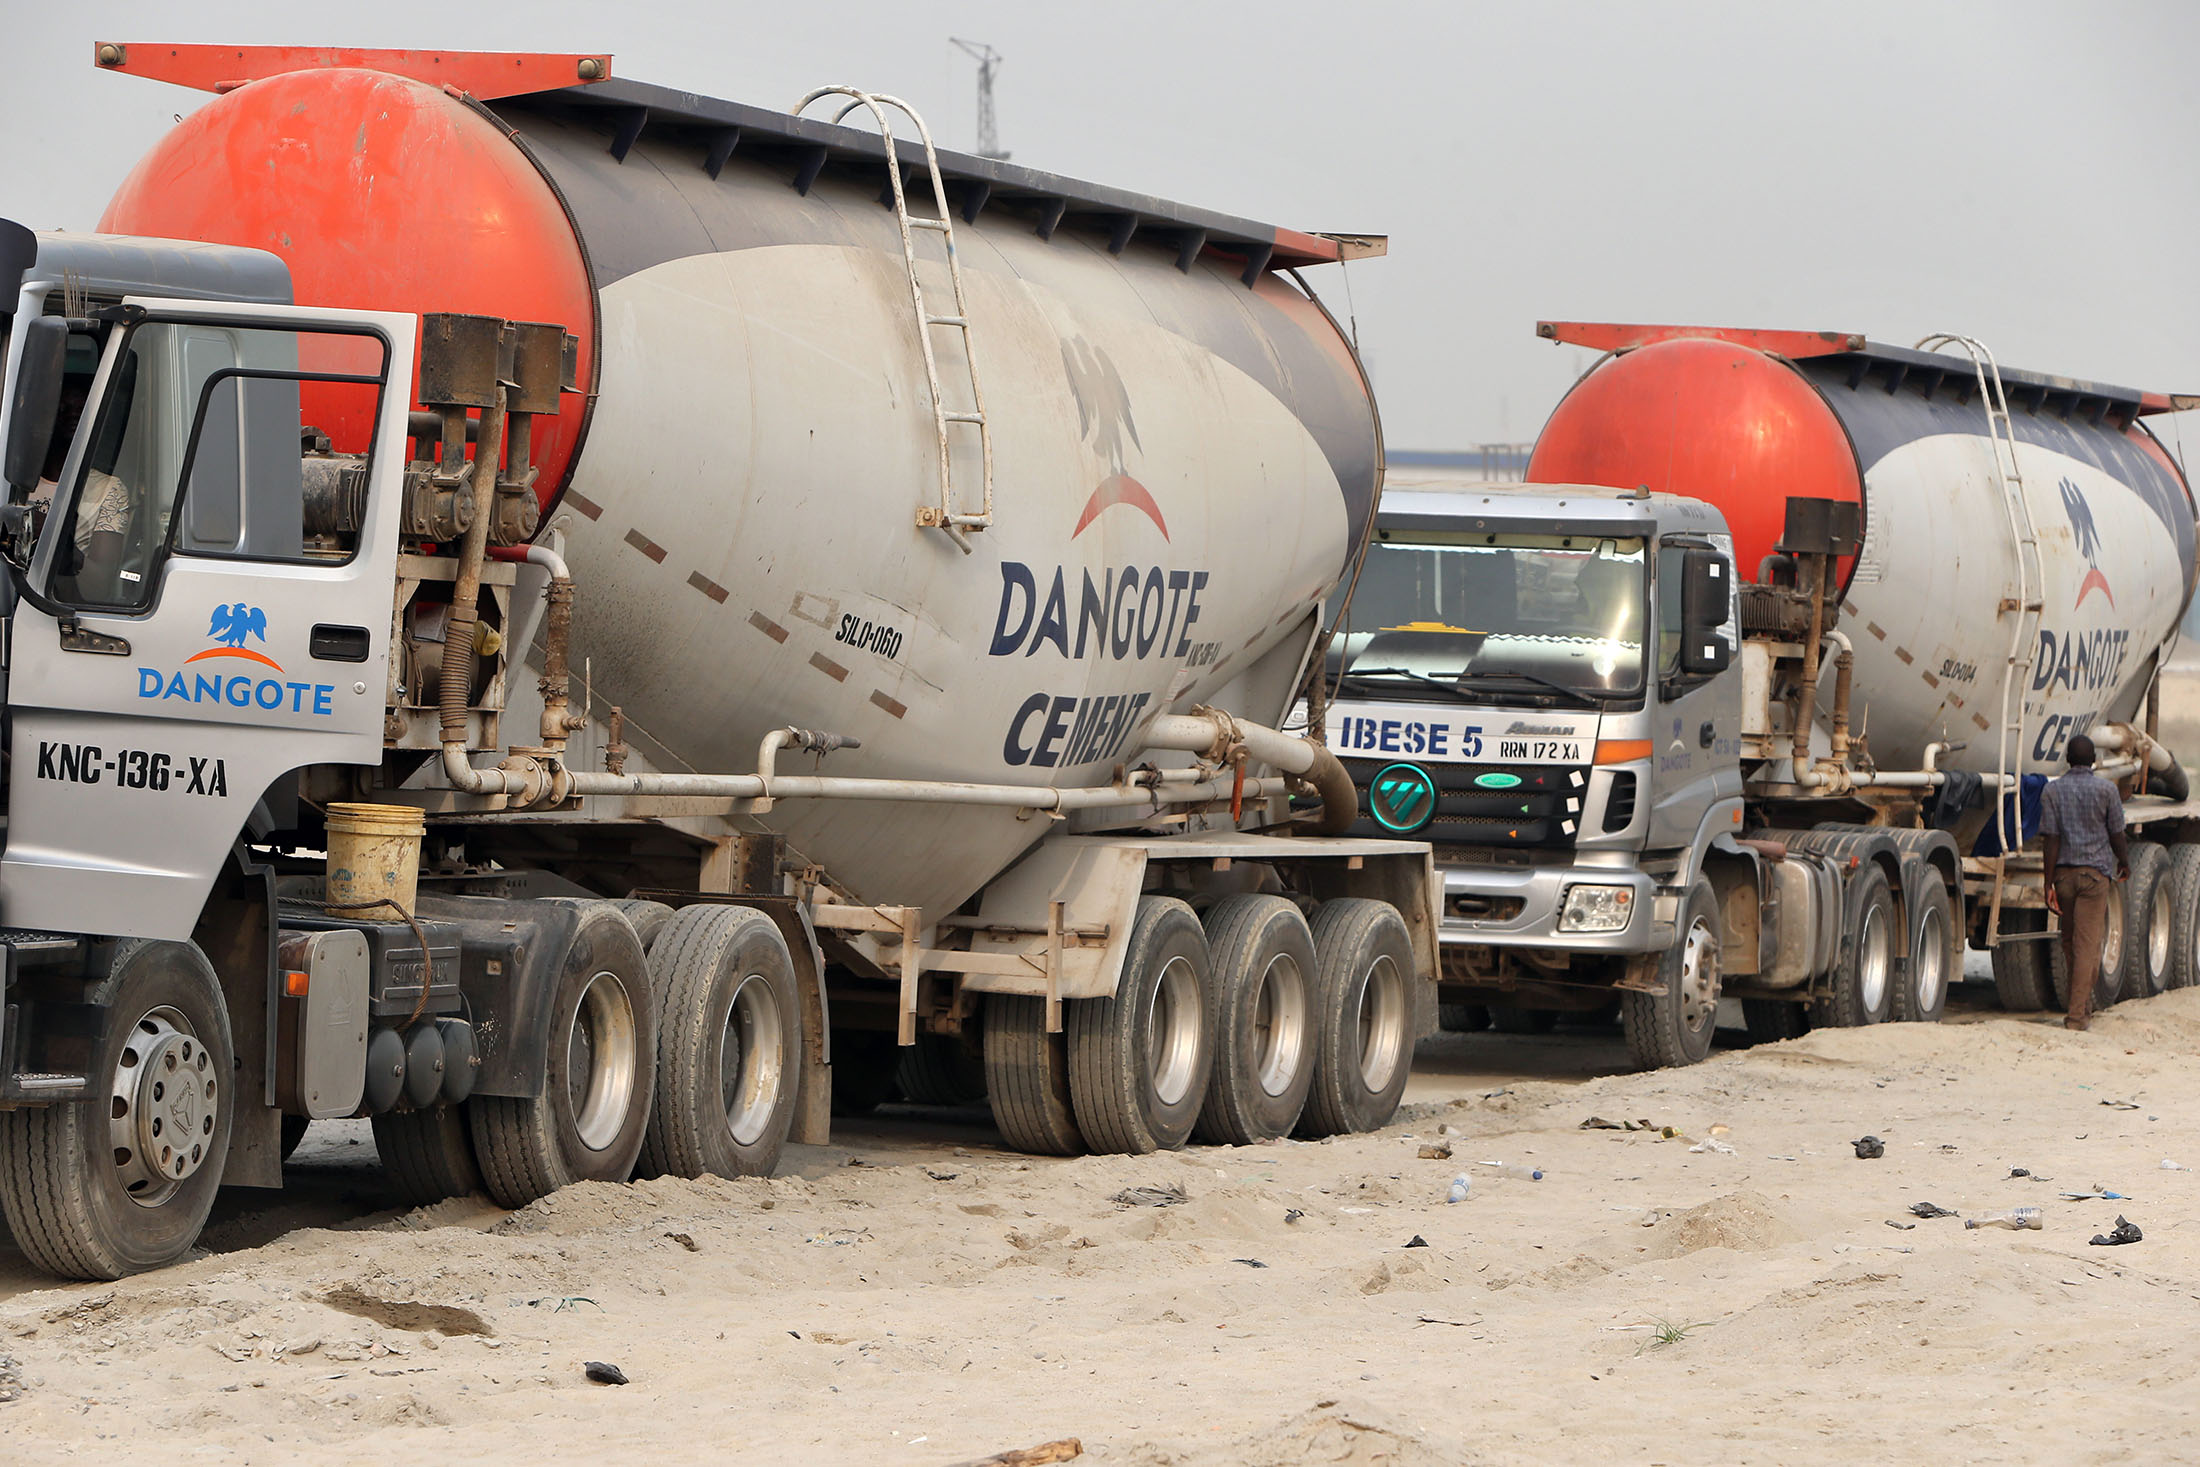 Dangote Cement disburses scholarship funds to Benue communities